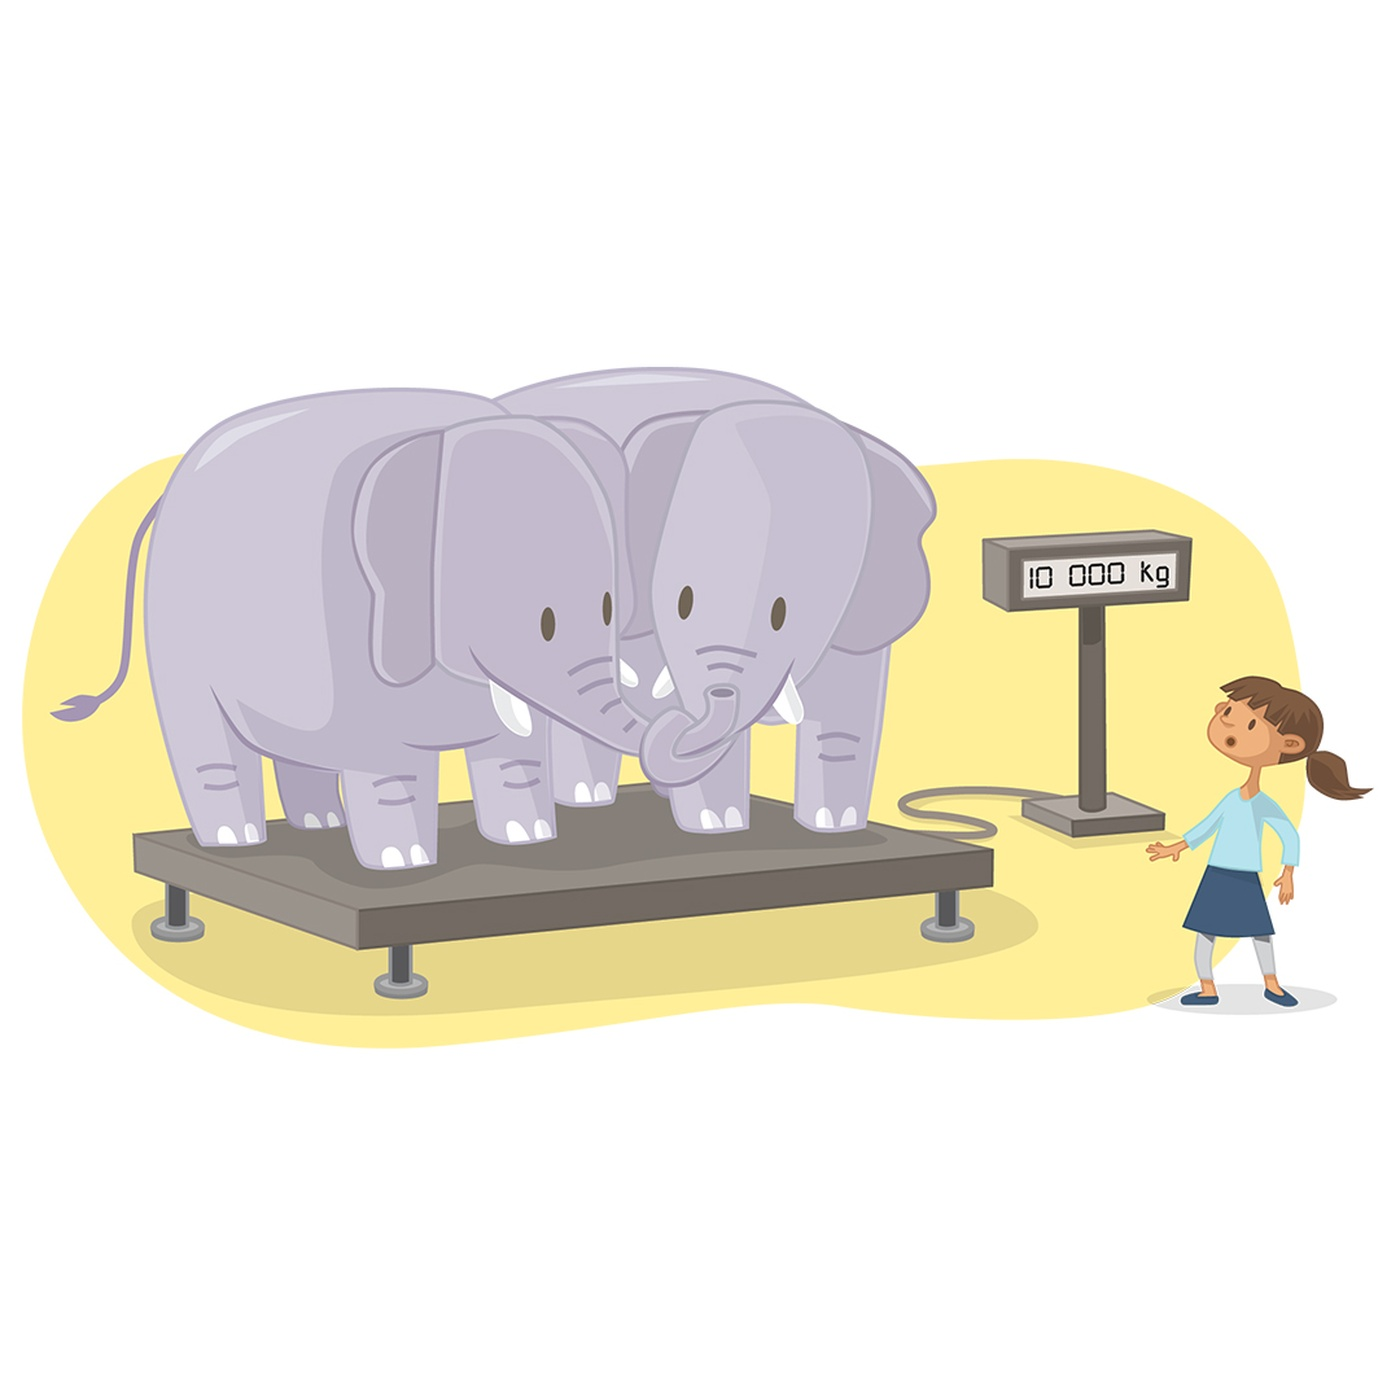 Pascale Constantin - How Much Do Elephants Weigh?